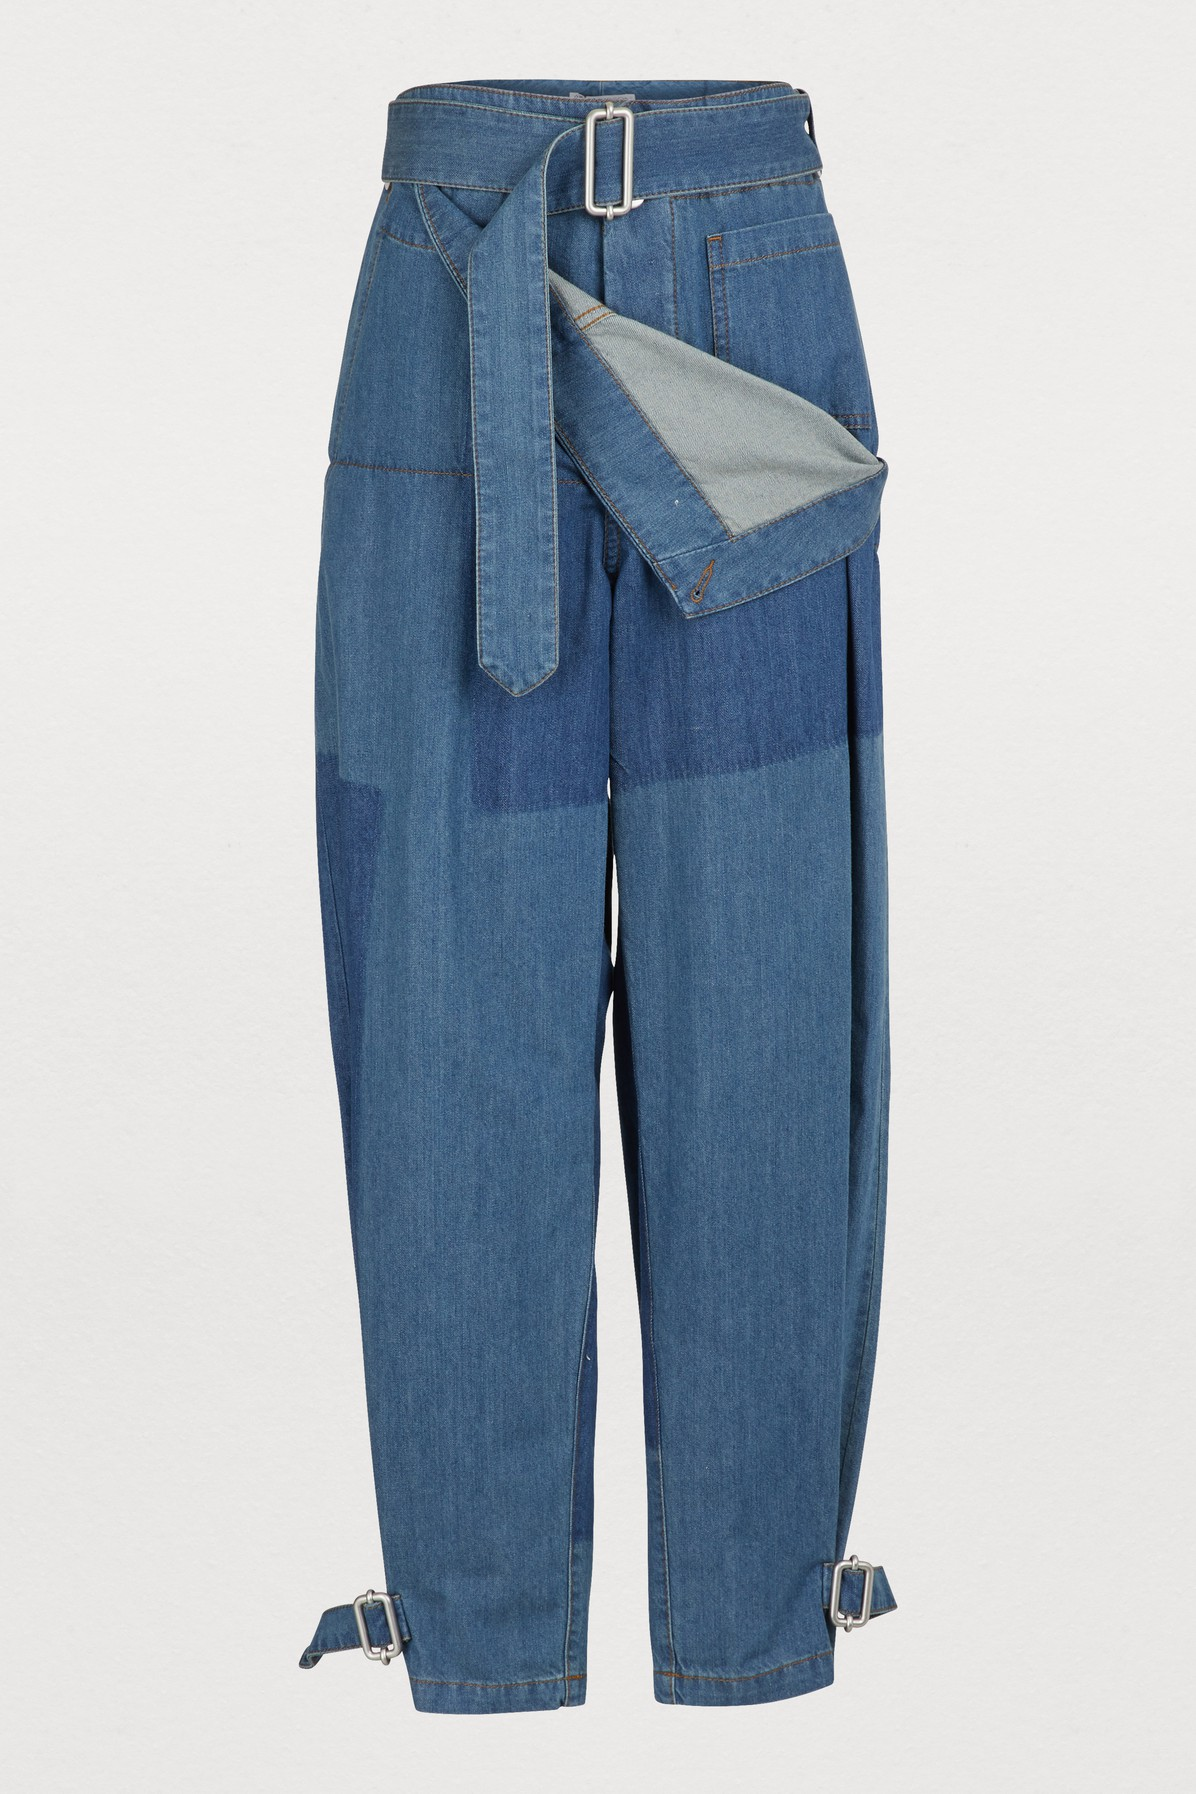 J.W.ANDERSON BUTTONED JEANS